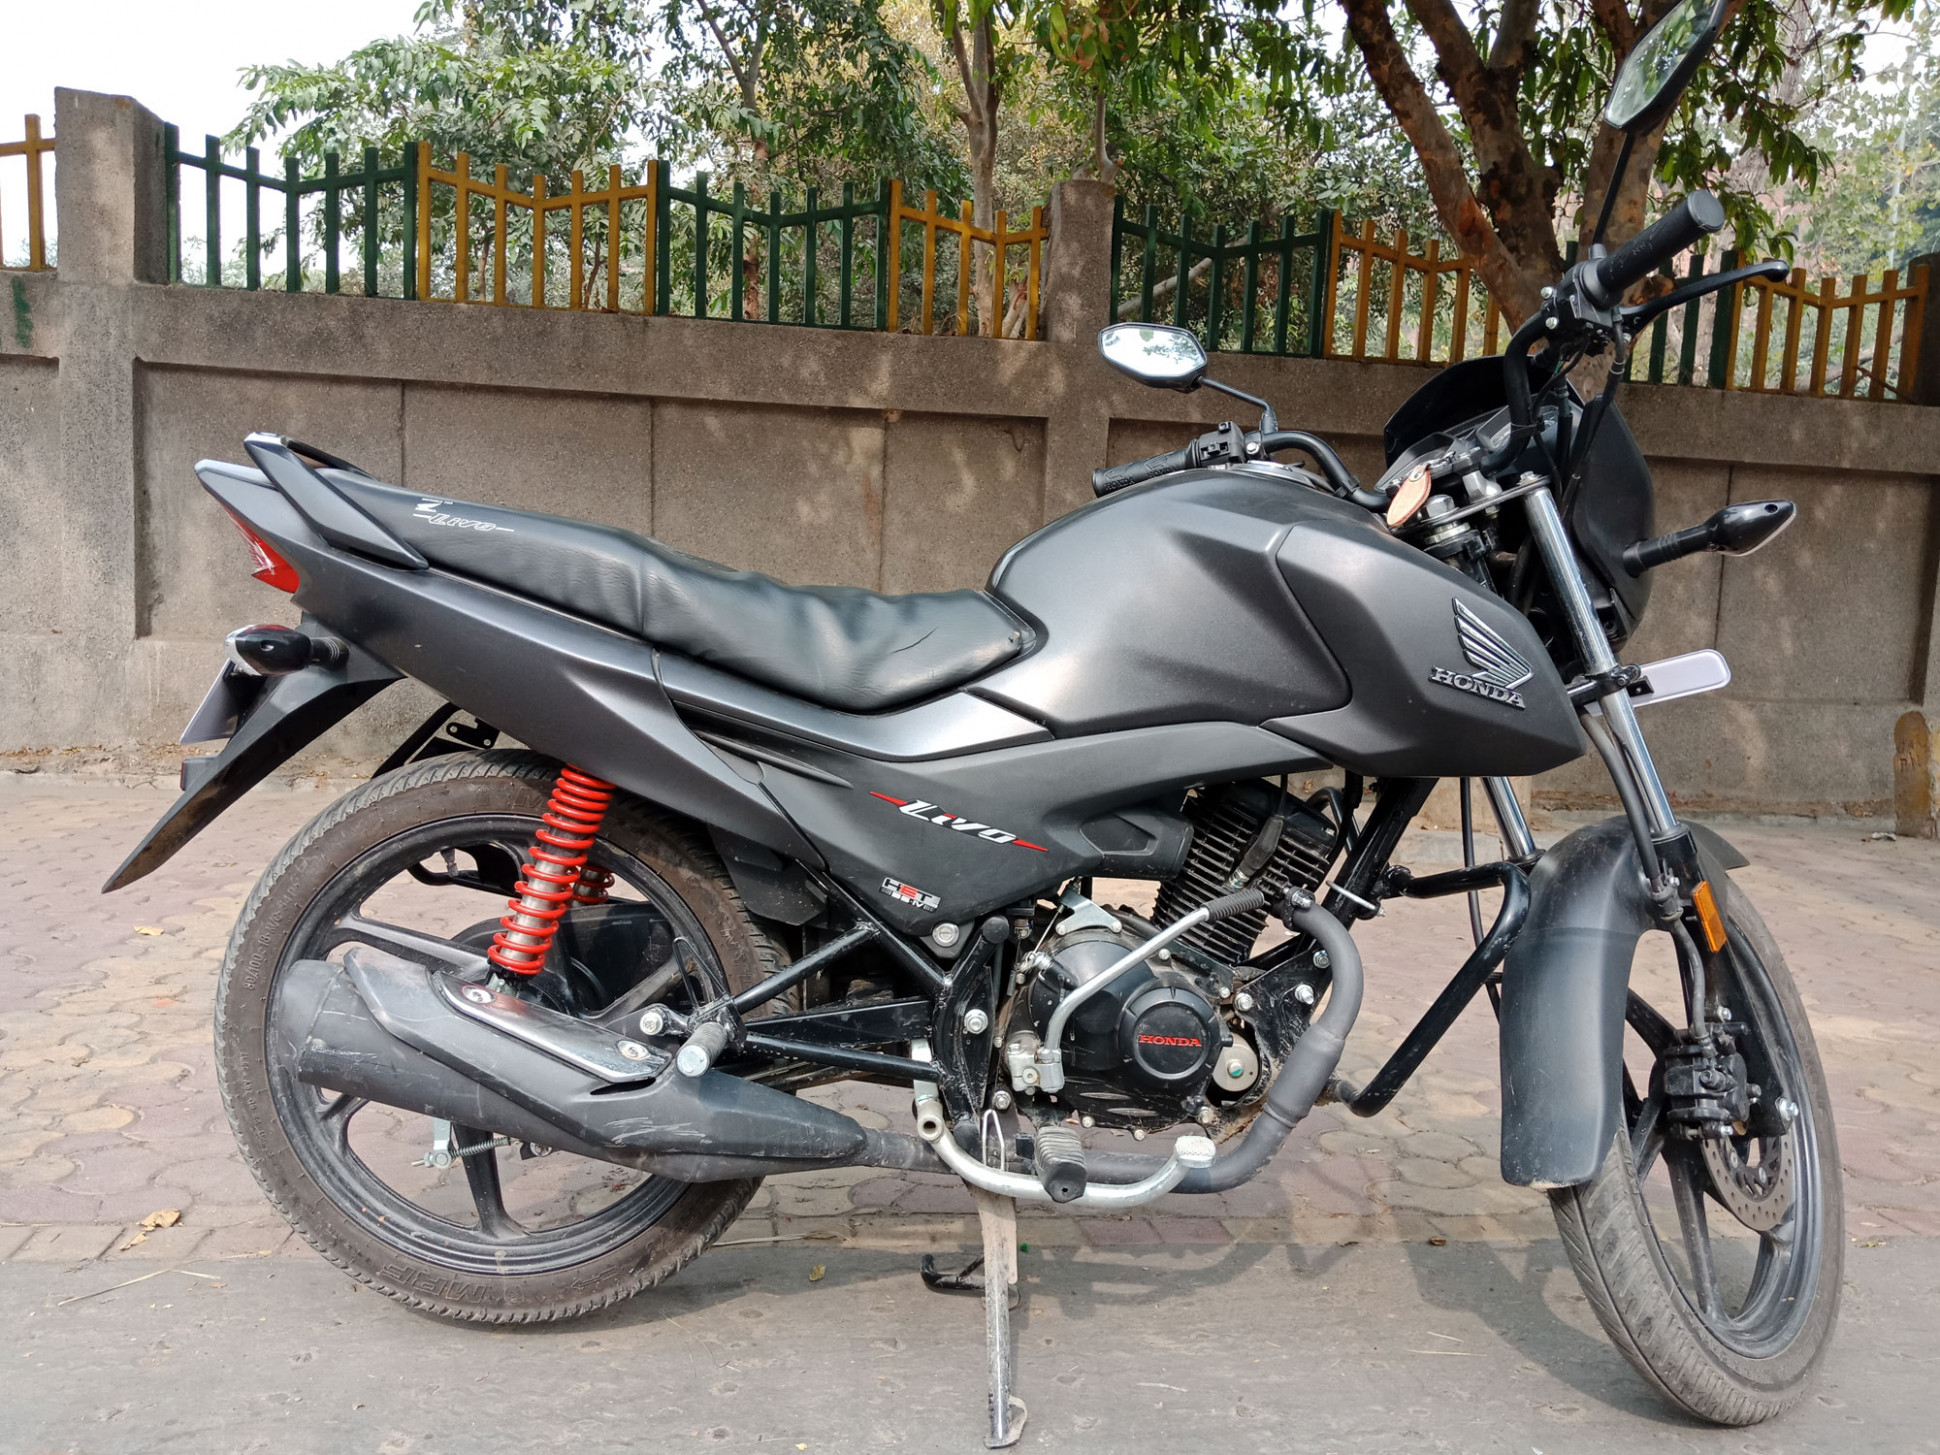 12 HONDA LIVO Road Test Review – Could It Be The Next Top ..